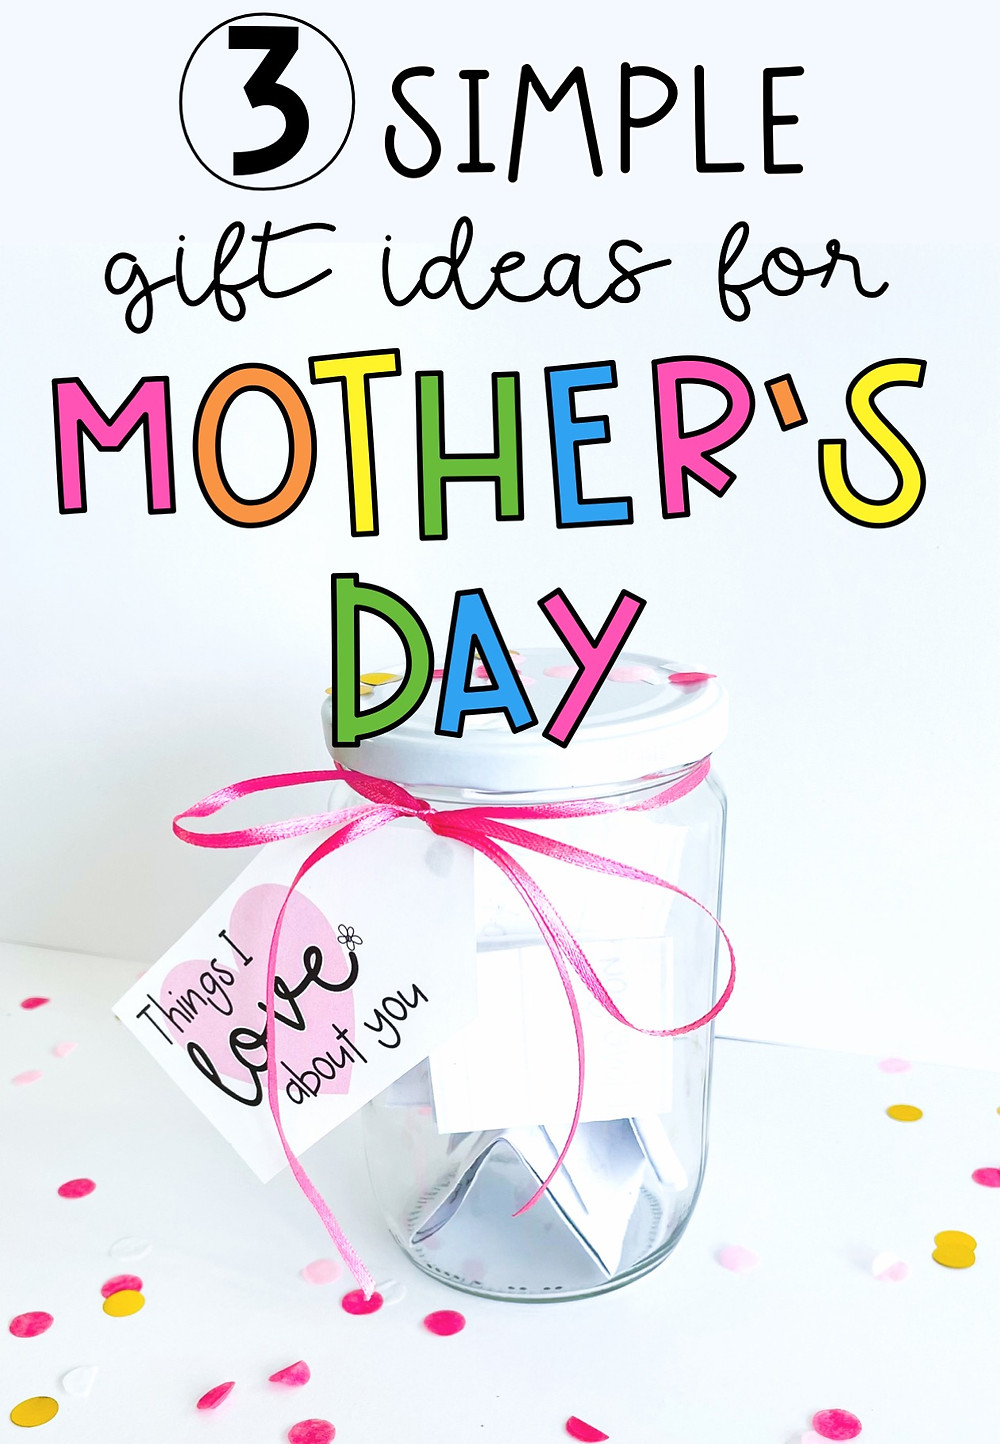 3 simple and heartfelt gift ideas for mothers day pin